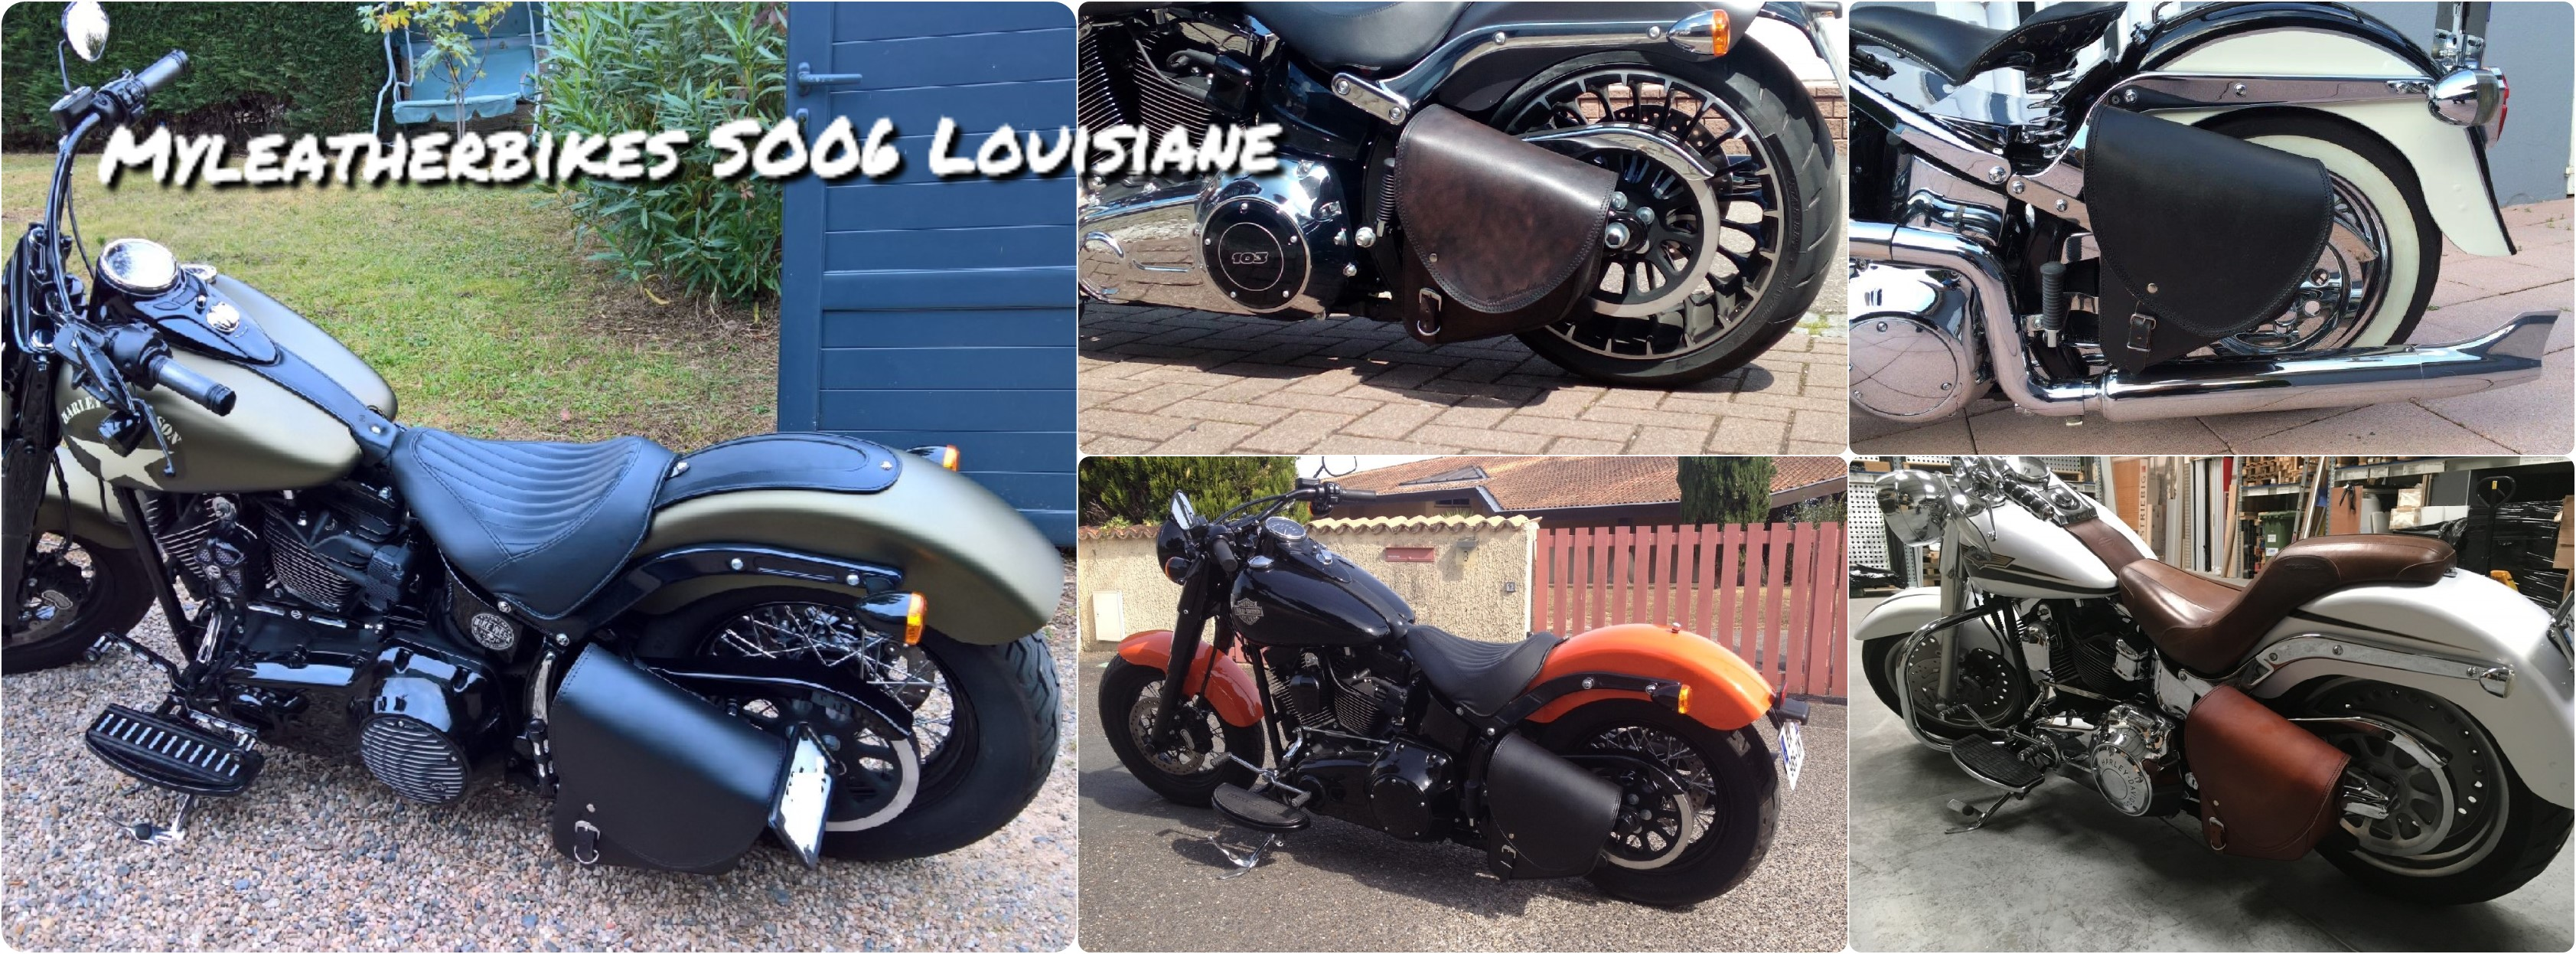 sacoche softail so06 louisiane